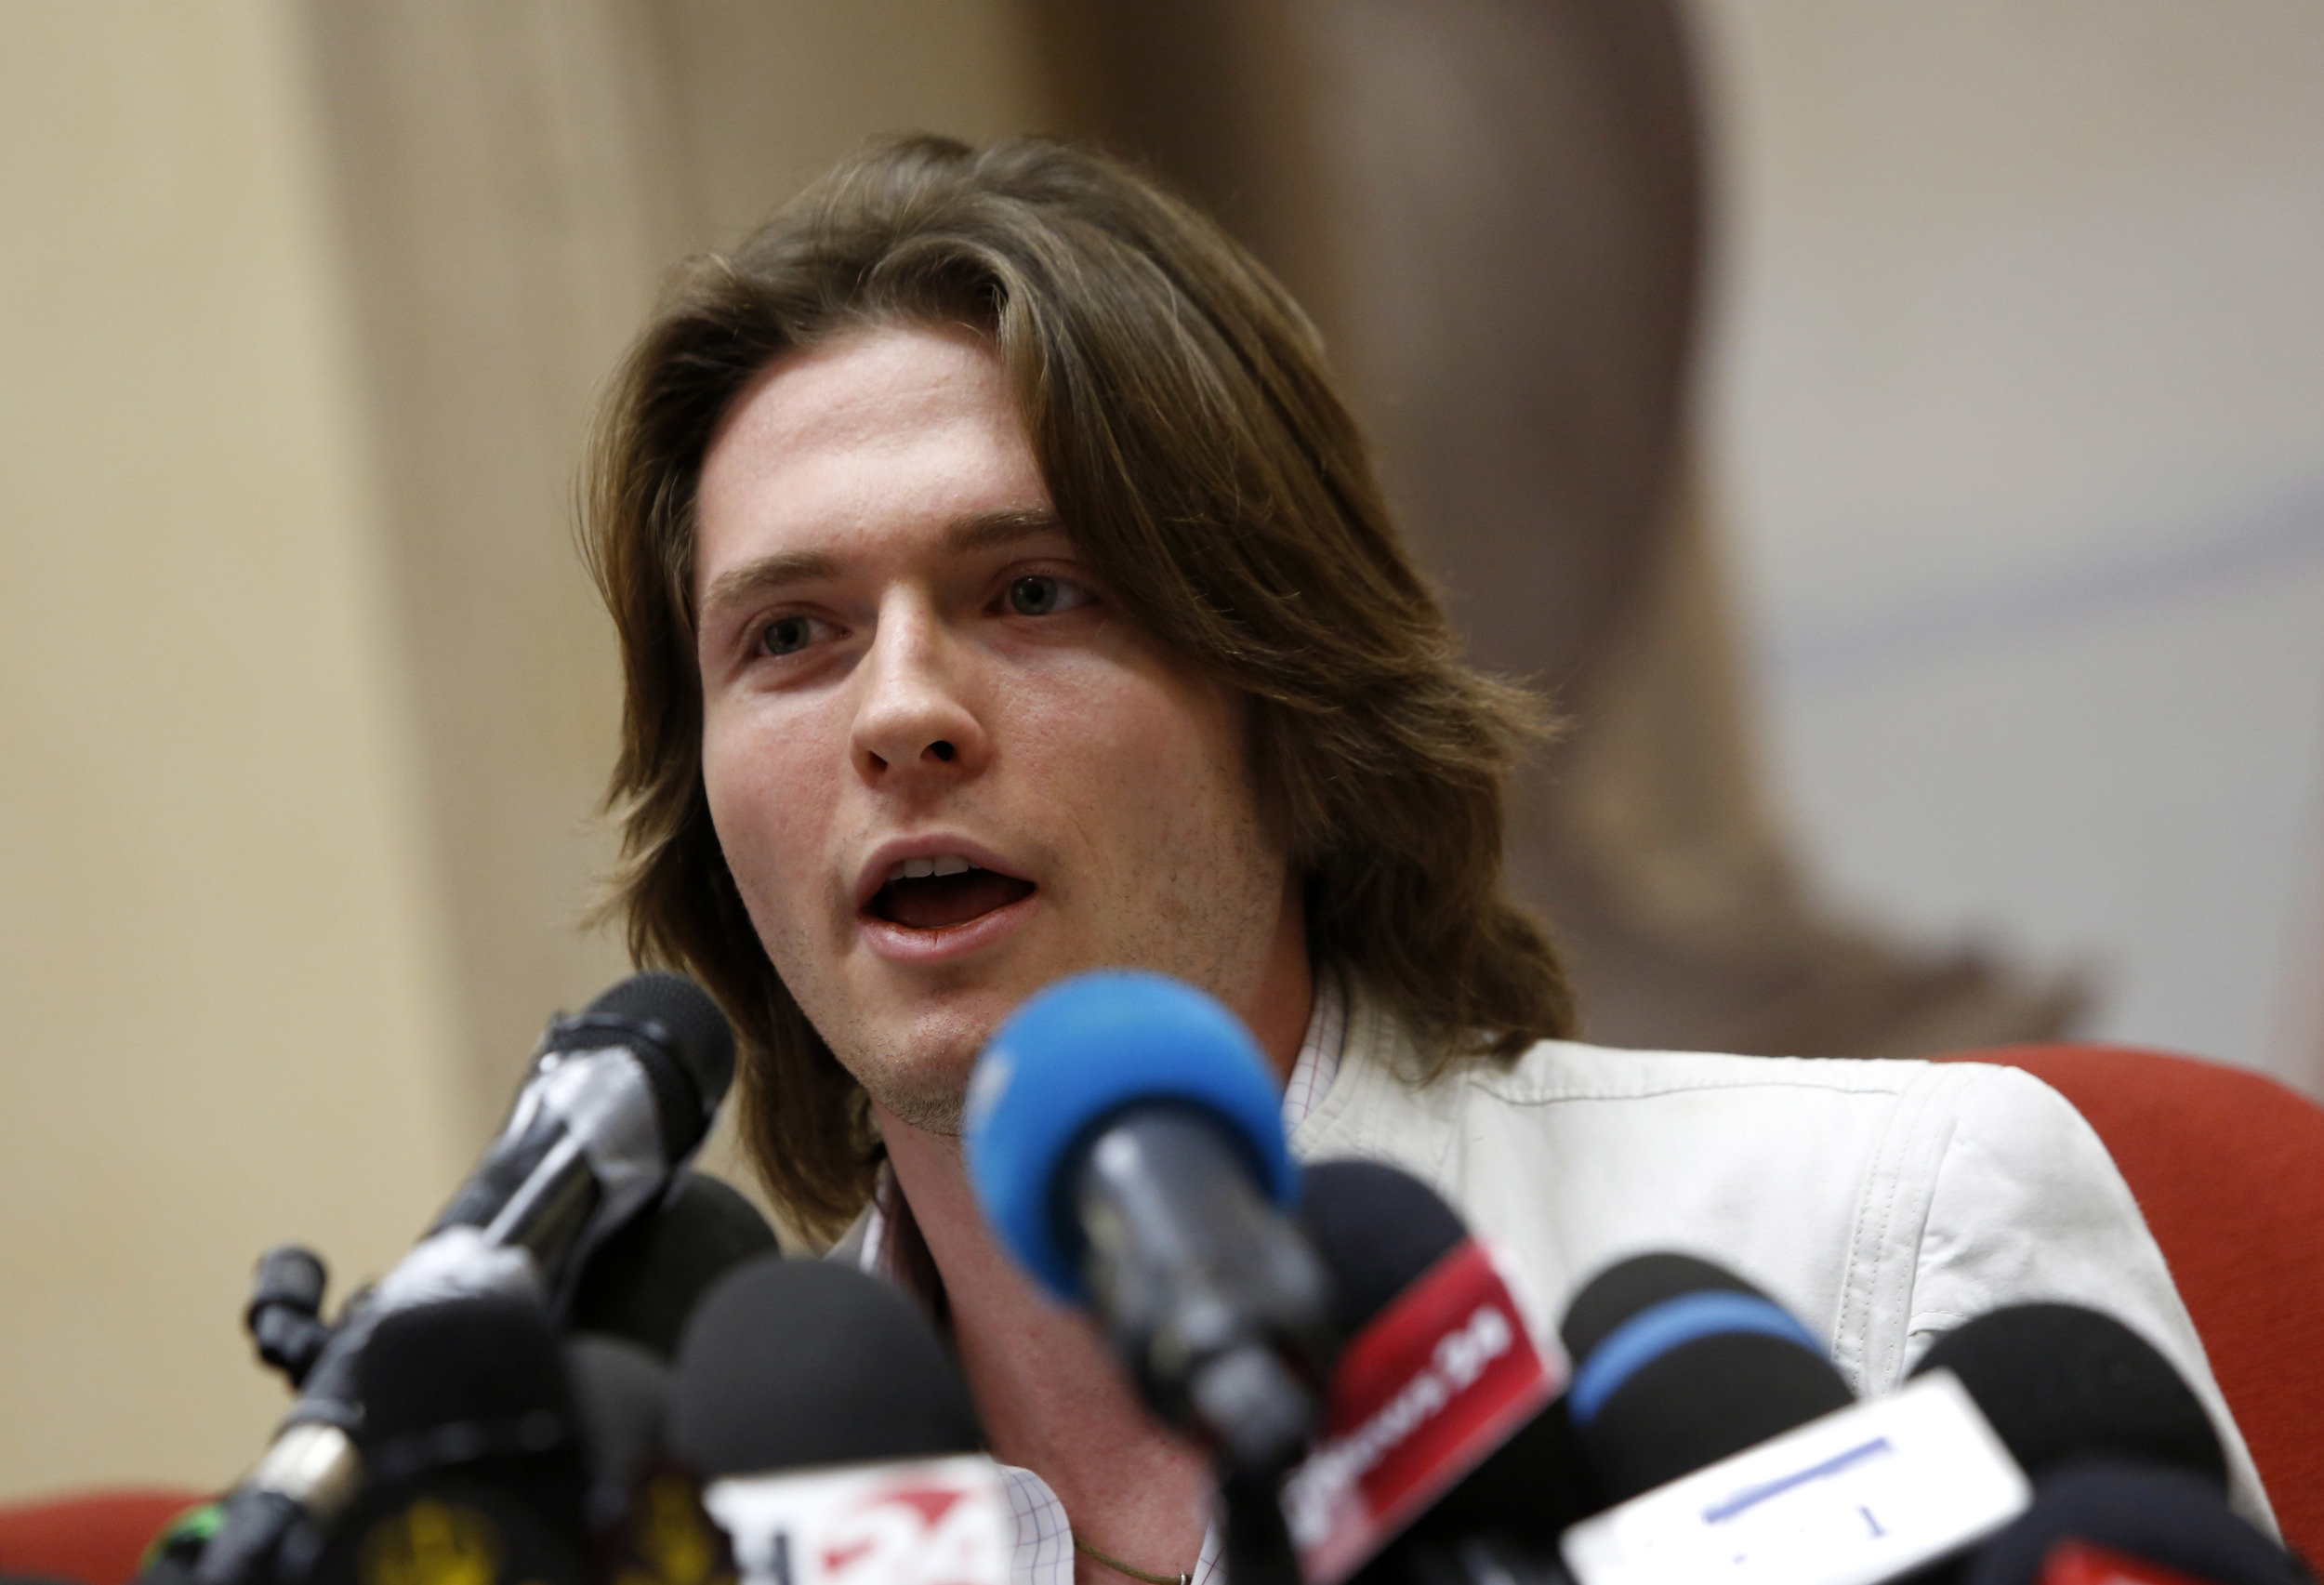 Amanda Knox wants to share other women's stories of public shaming